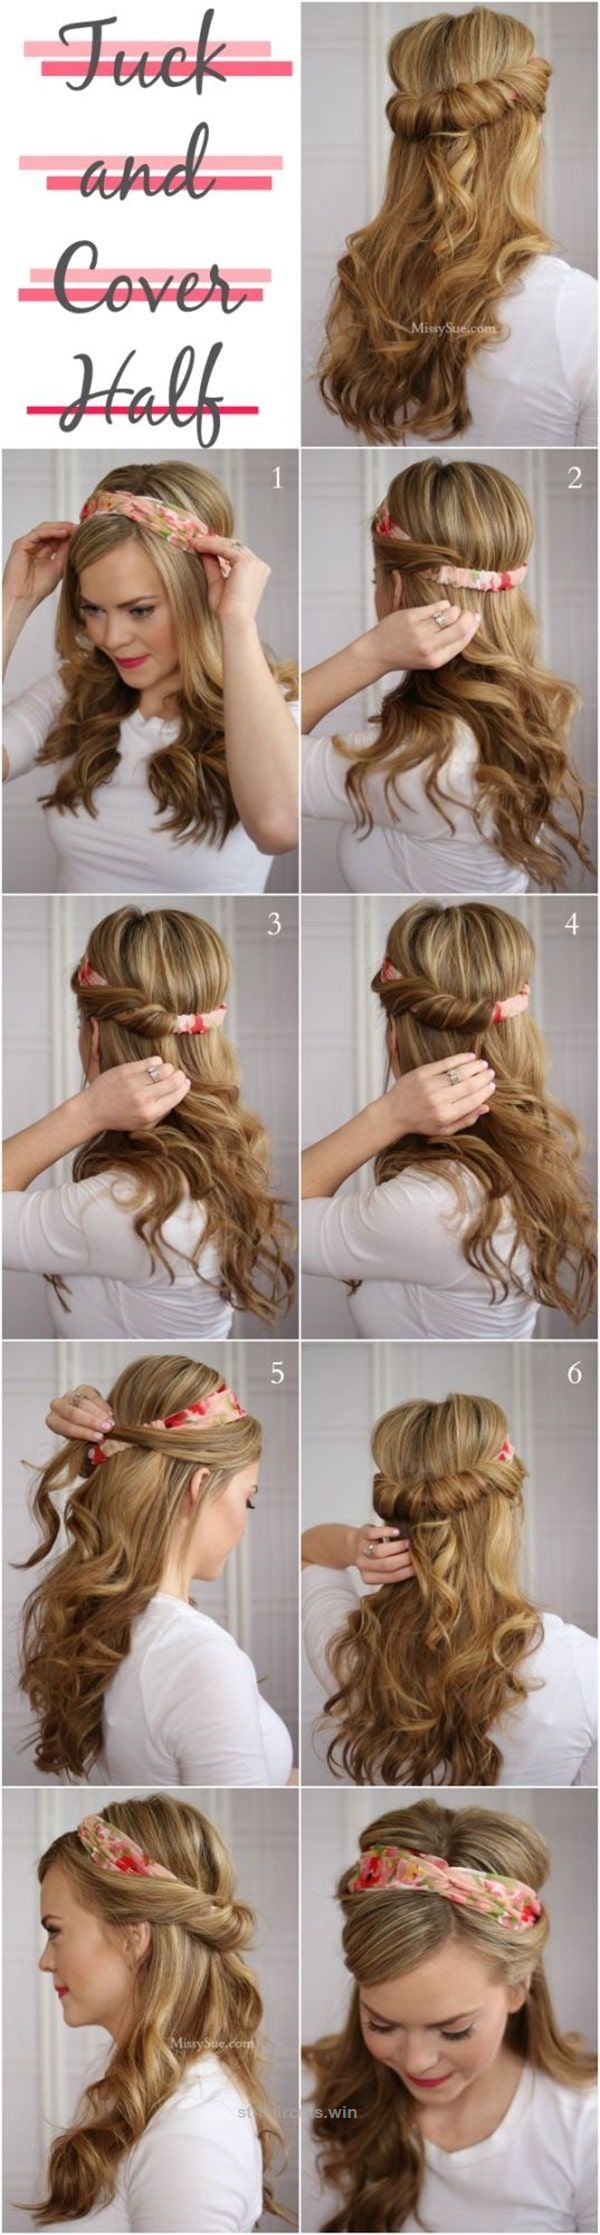 Quick hairstyle tutorials for office women french girls still have